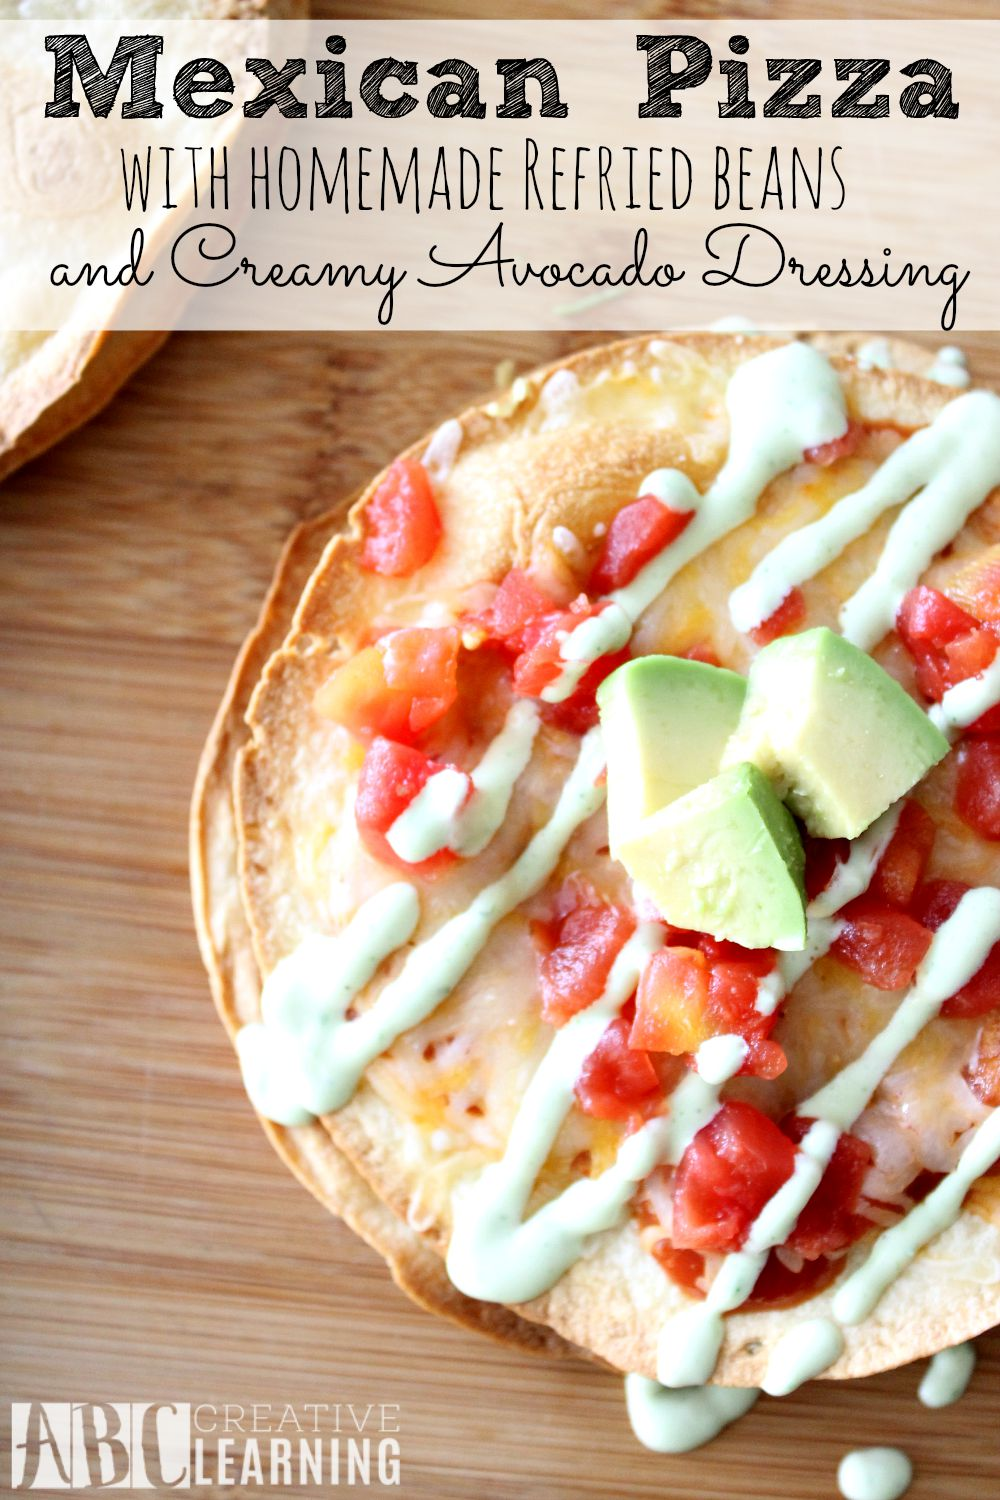 Mexican Pizza with Homemade Pinto Beans